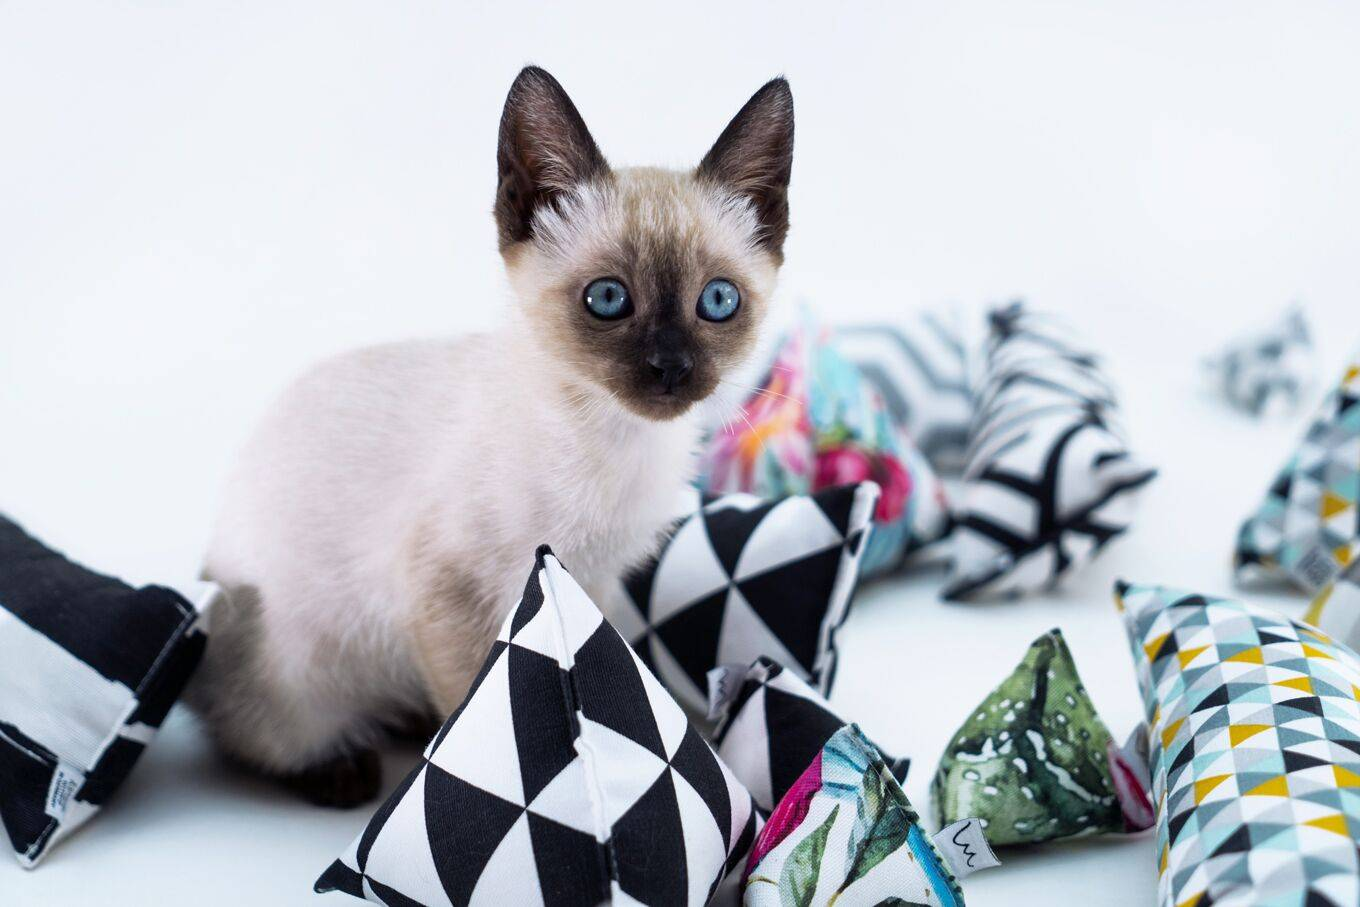 Help us make these cat toys reality: Minoumi – Designed Cat Toys Kickstarter campaign